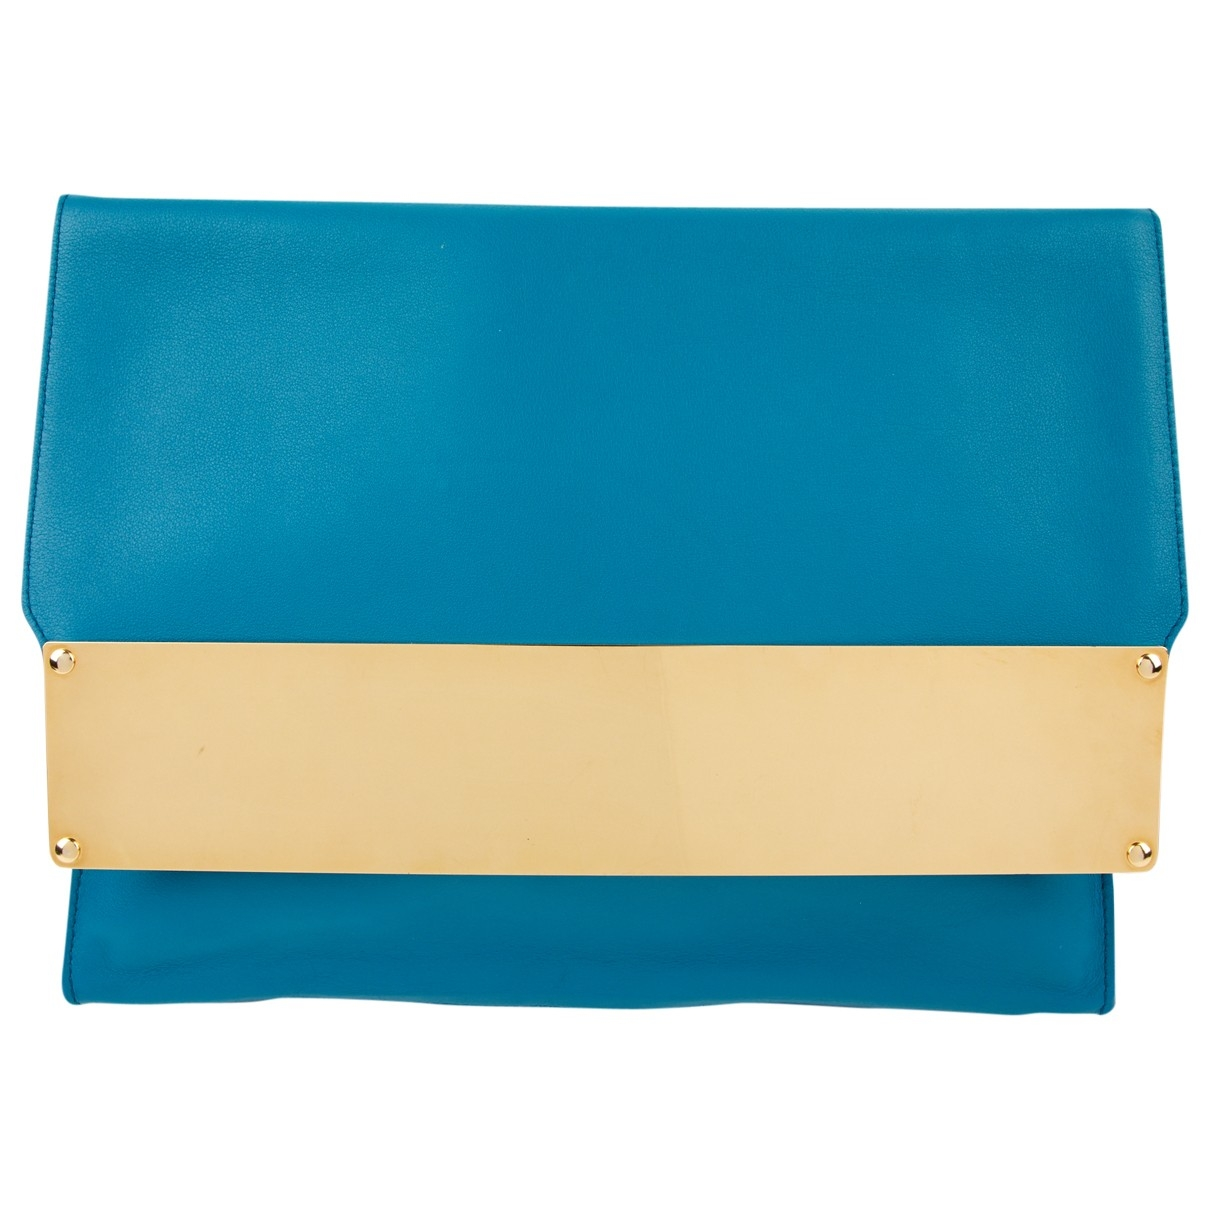 Sophie Hulme \N Blue Leather Clutch bag for Women \N